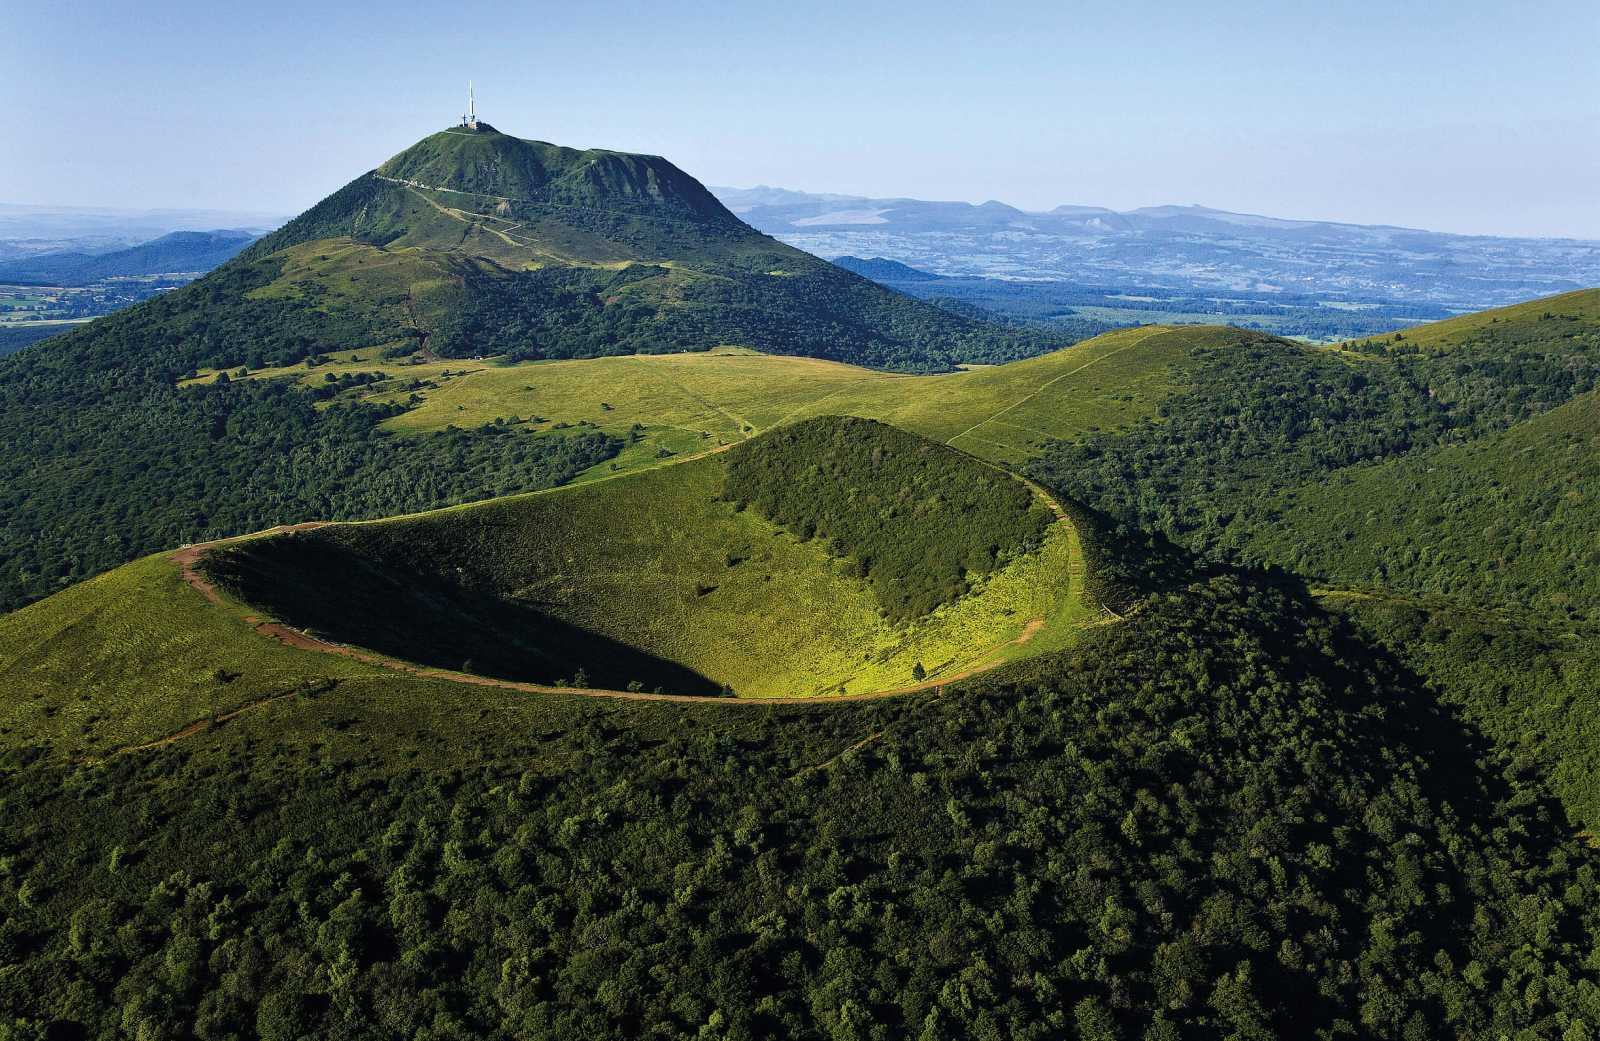 The Puy-de-Dôme: a walk to the summit